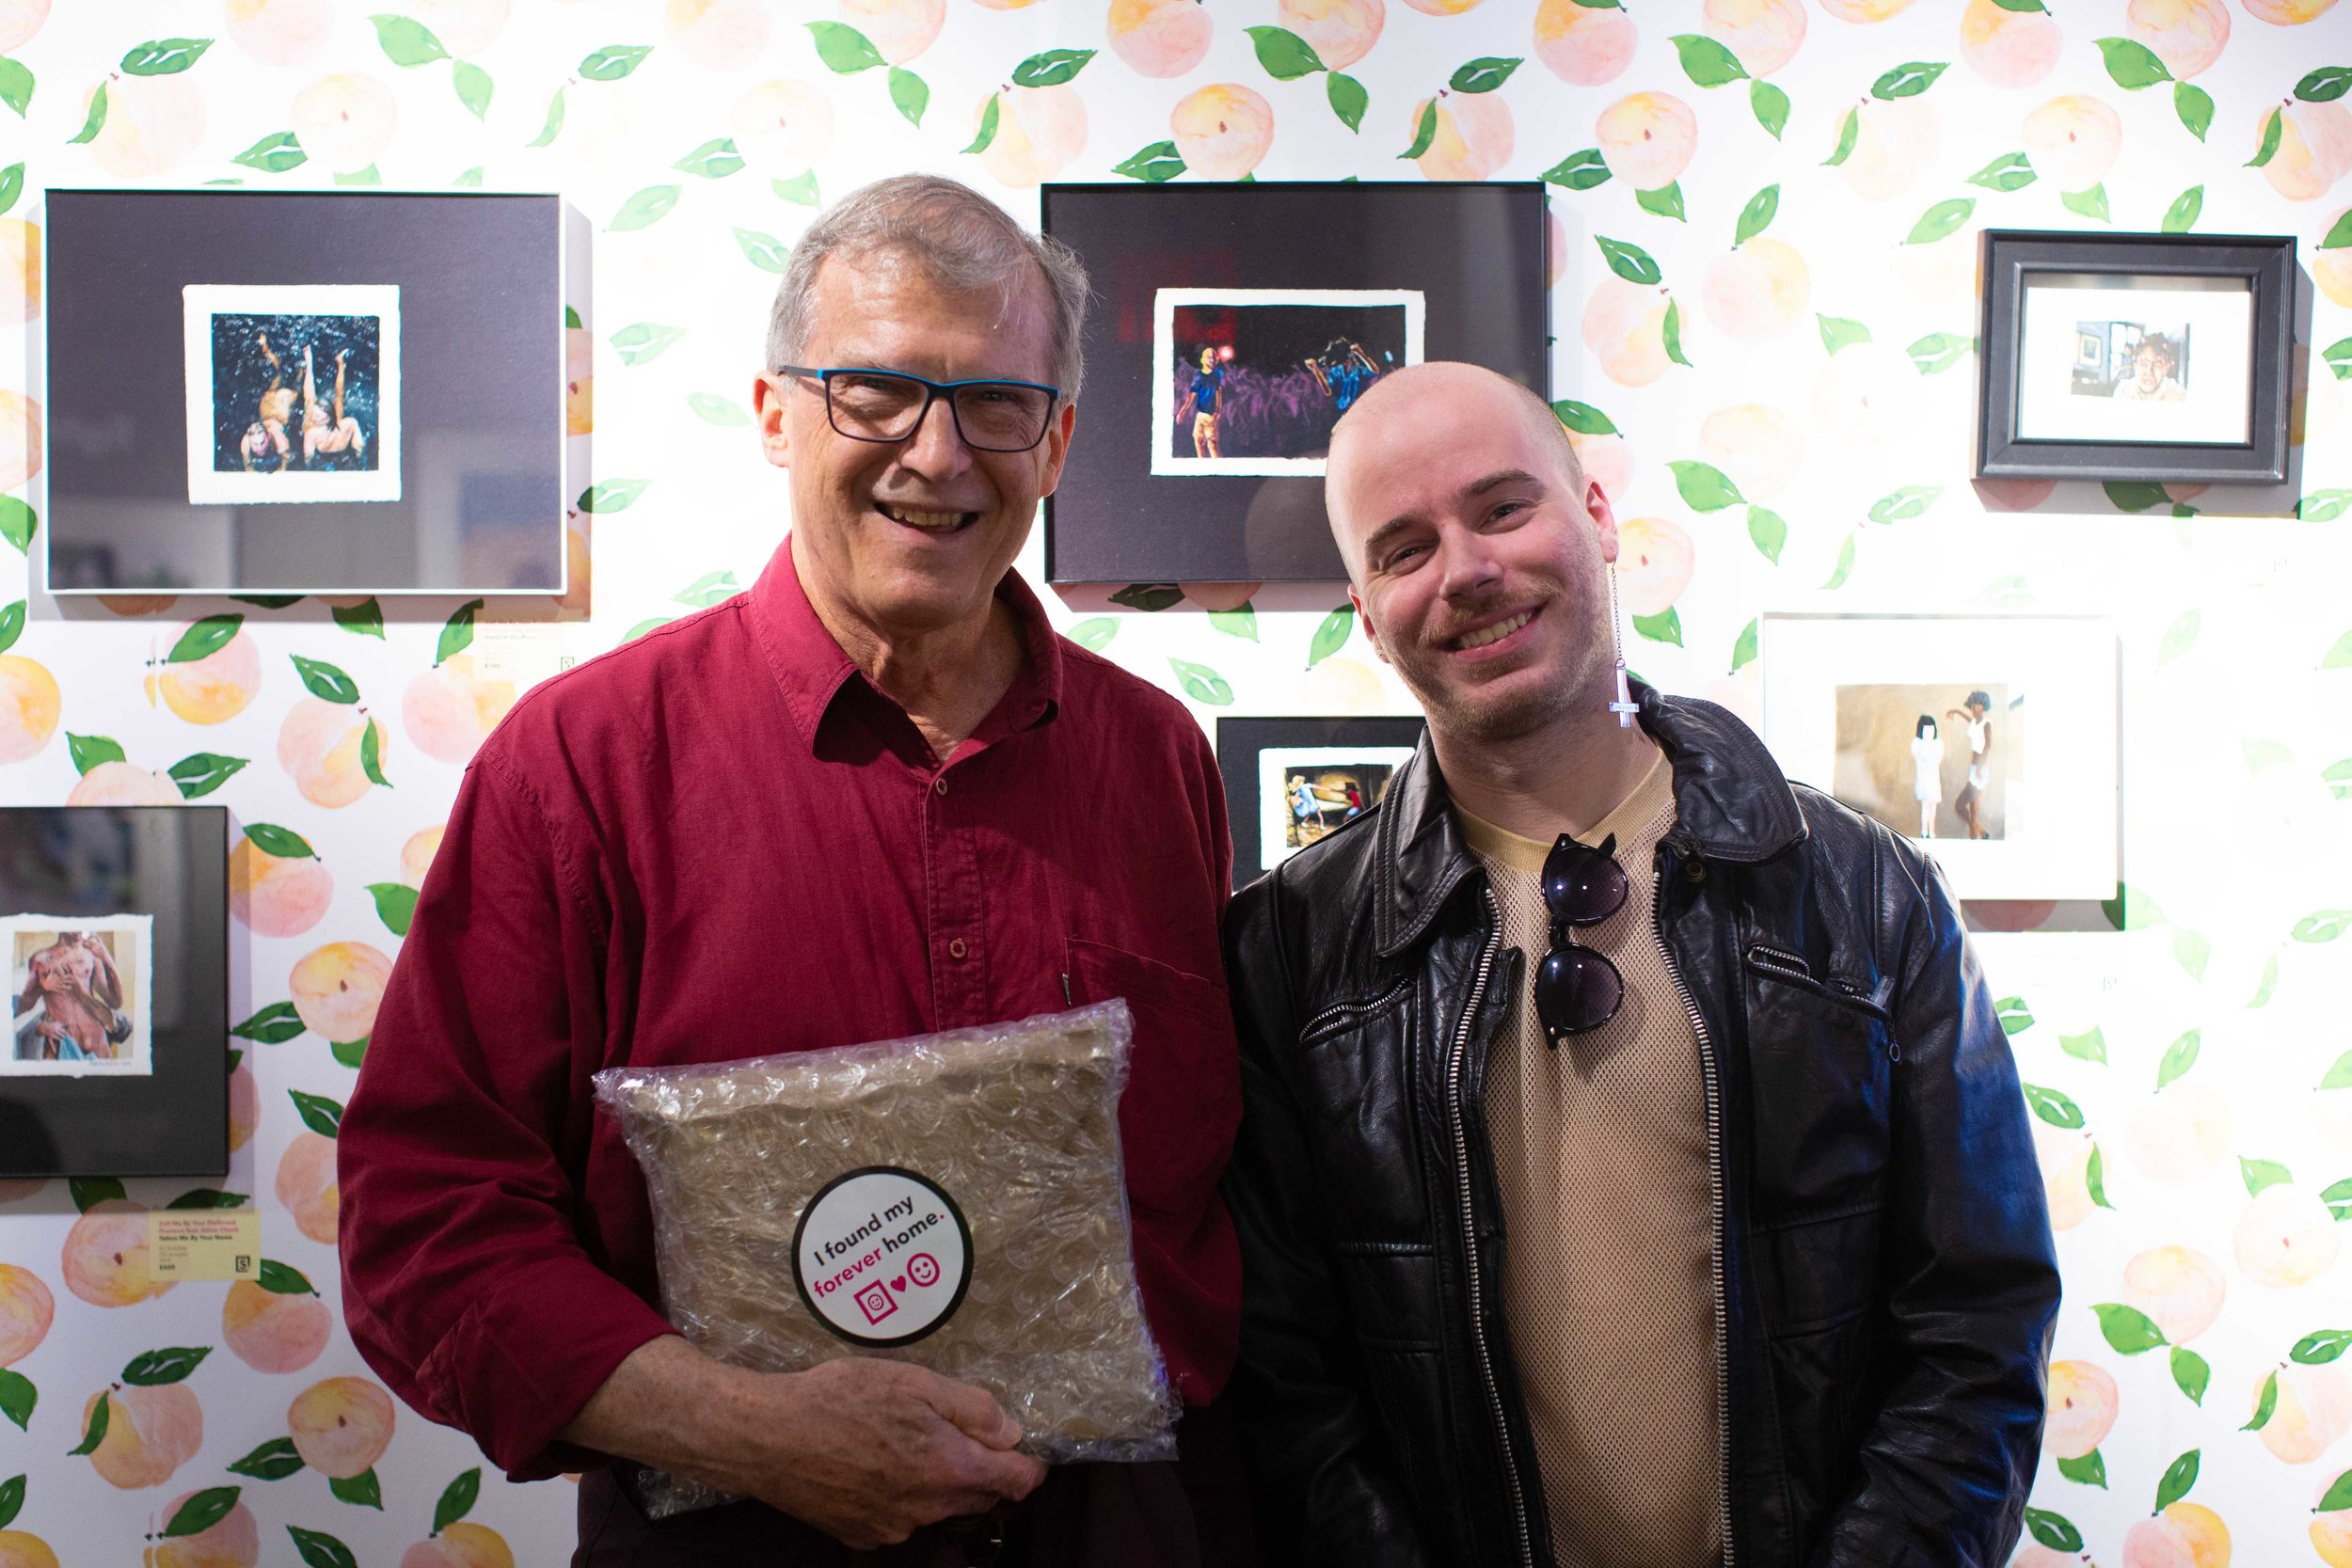 """Above: Adam Chuck poses with a new collector in front of his """"Call Me By Your Preferred Pronoun"""" installation at Superfine! Art Fair in NYC, May 2019."""